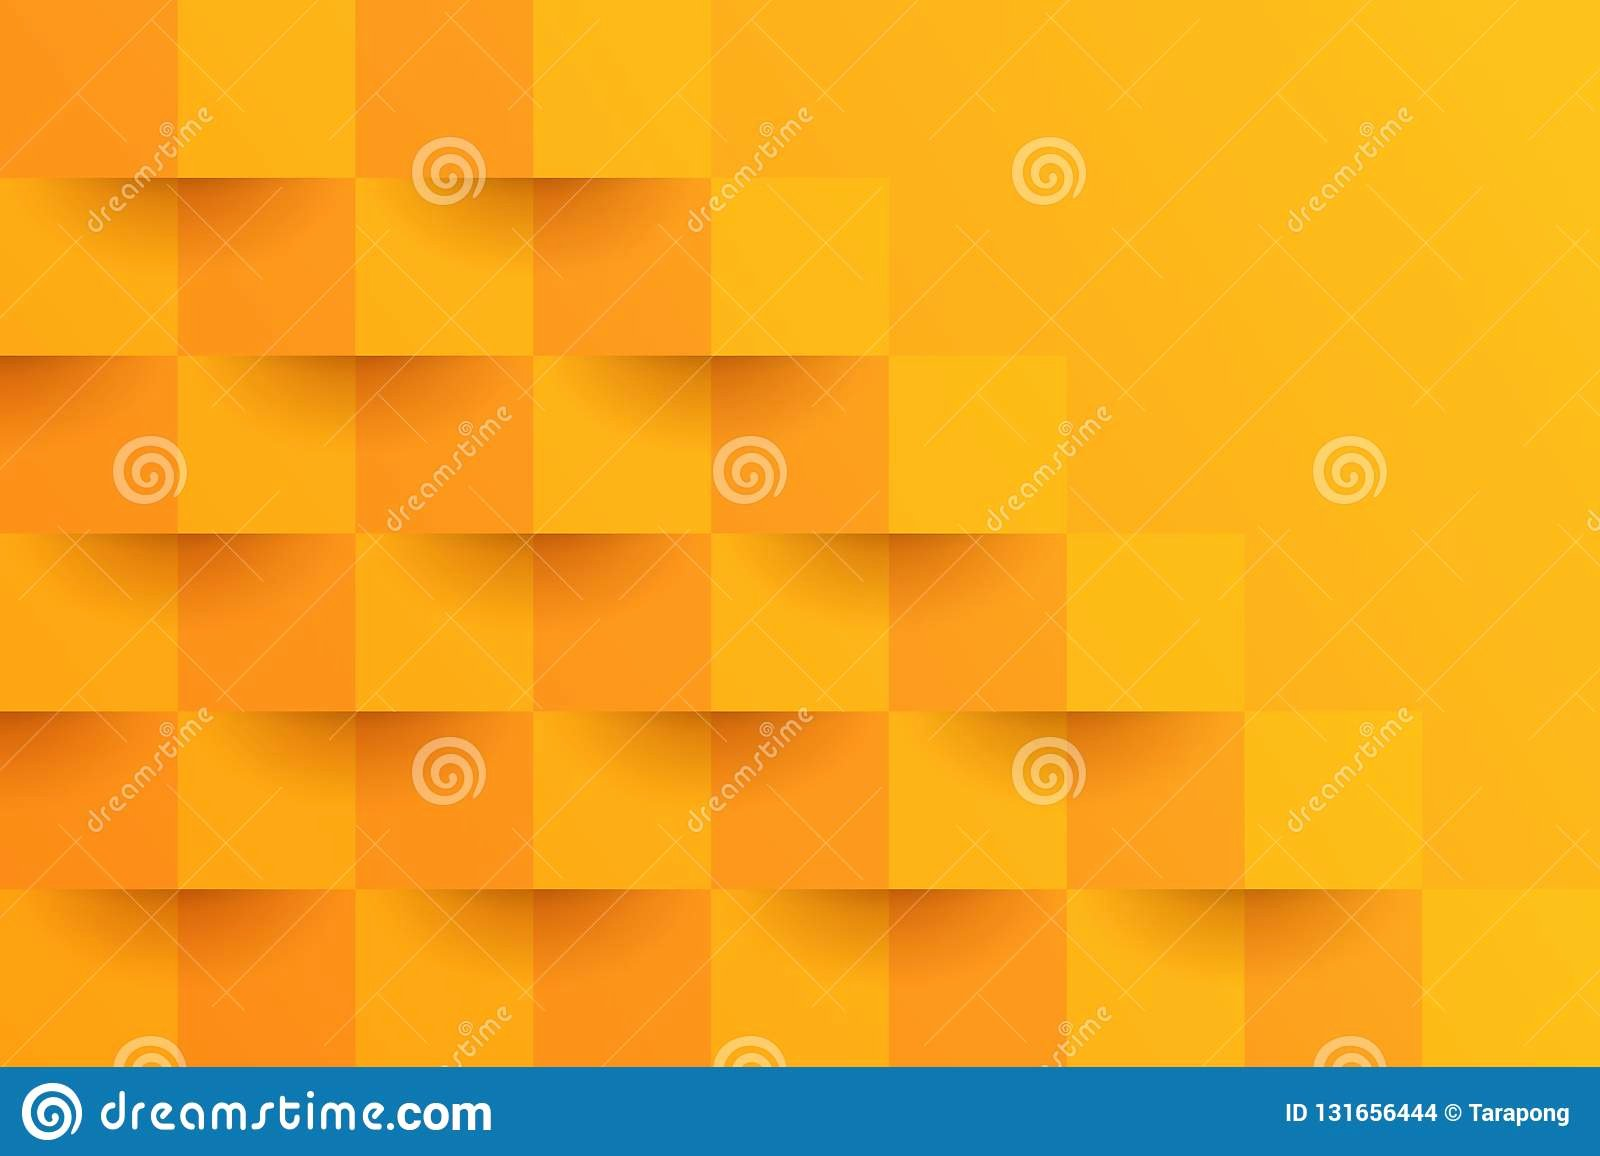 Video Background Website Template Luxury orange Geometric Pattern Abstract Background Template